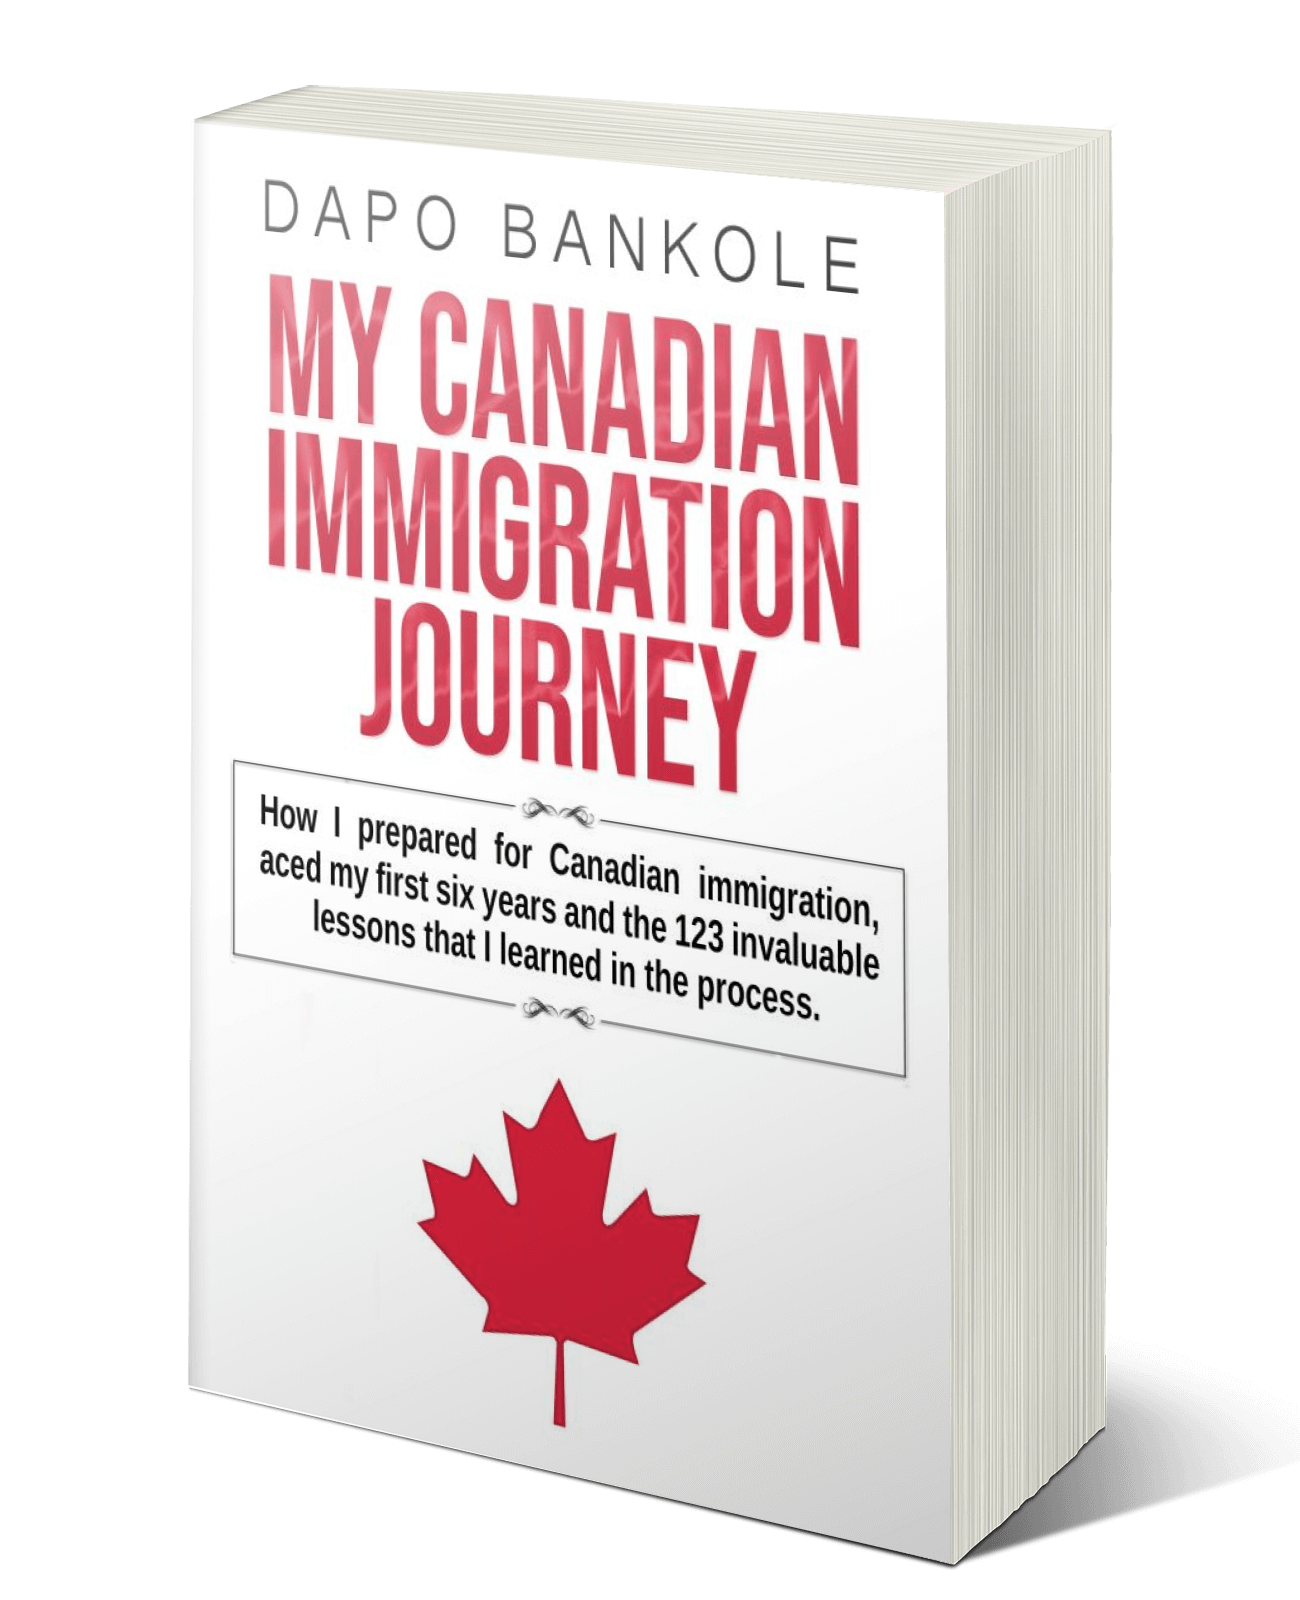 My Canadian Immigration Journey